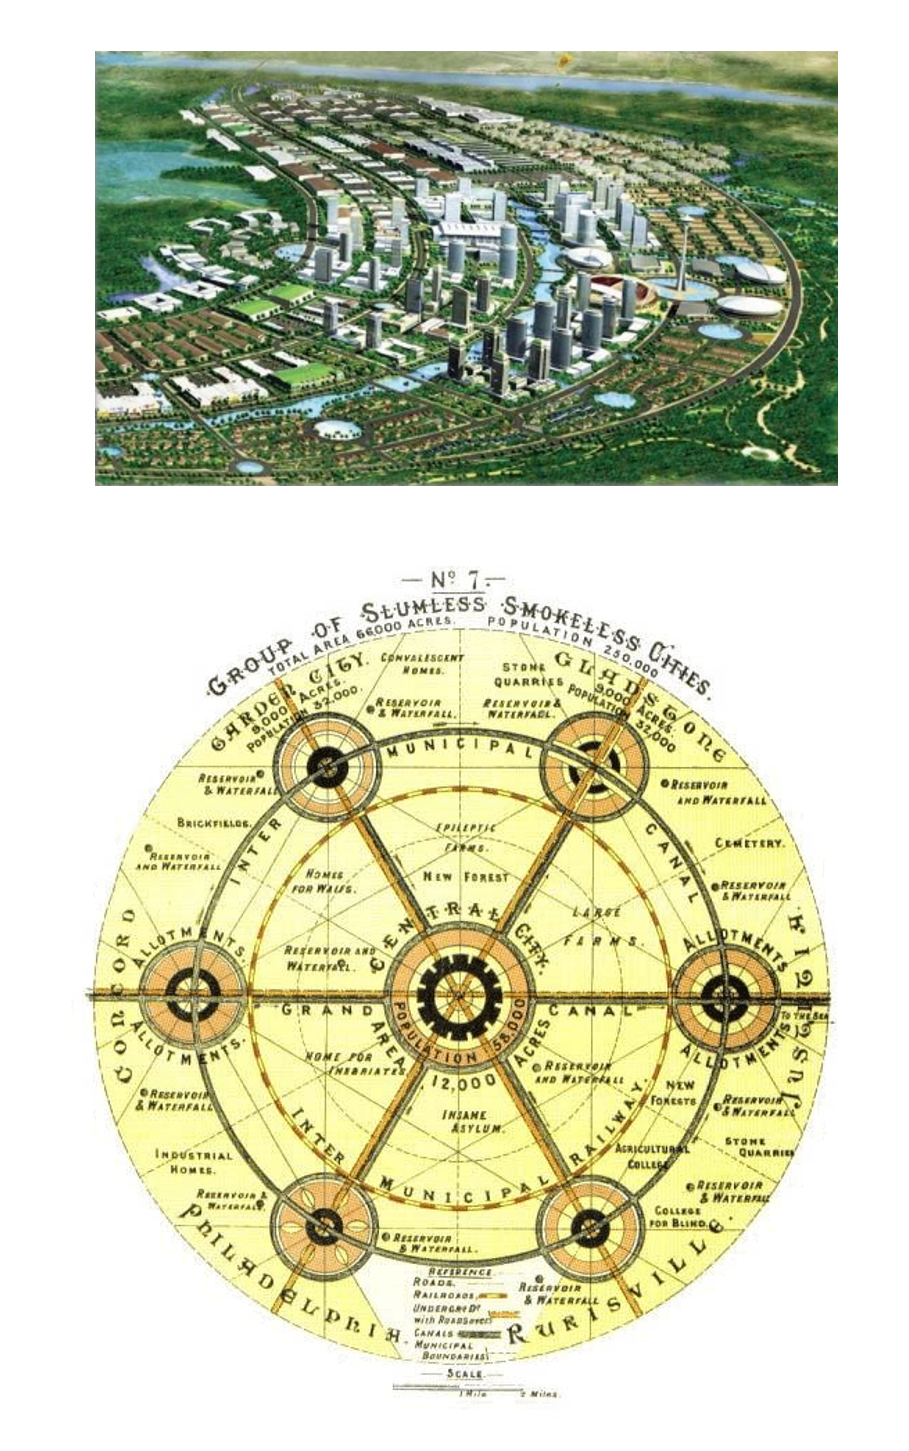 GARDEN CITY Ebenezer Howard thought industrial age cities had become unlivable and thought we should all live in small towns surrounded and permeated by gardens. Frank Lloyd Wright was a proponent too.